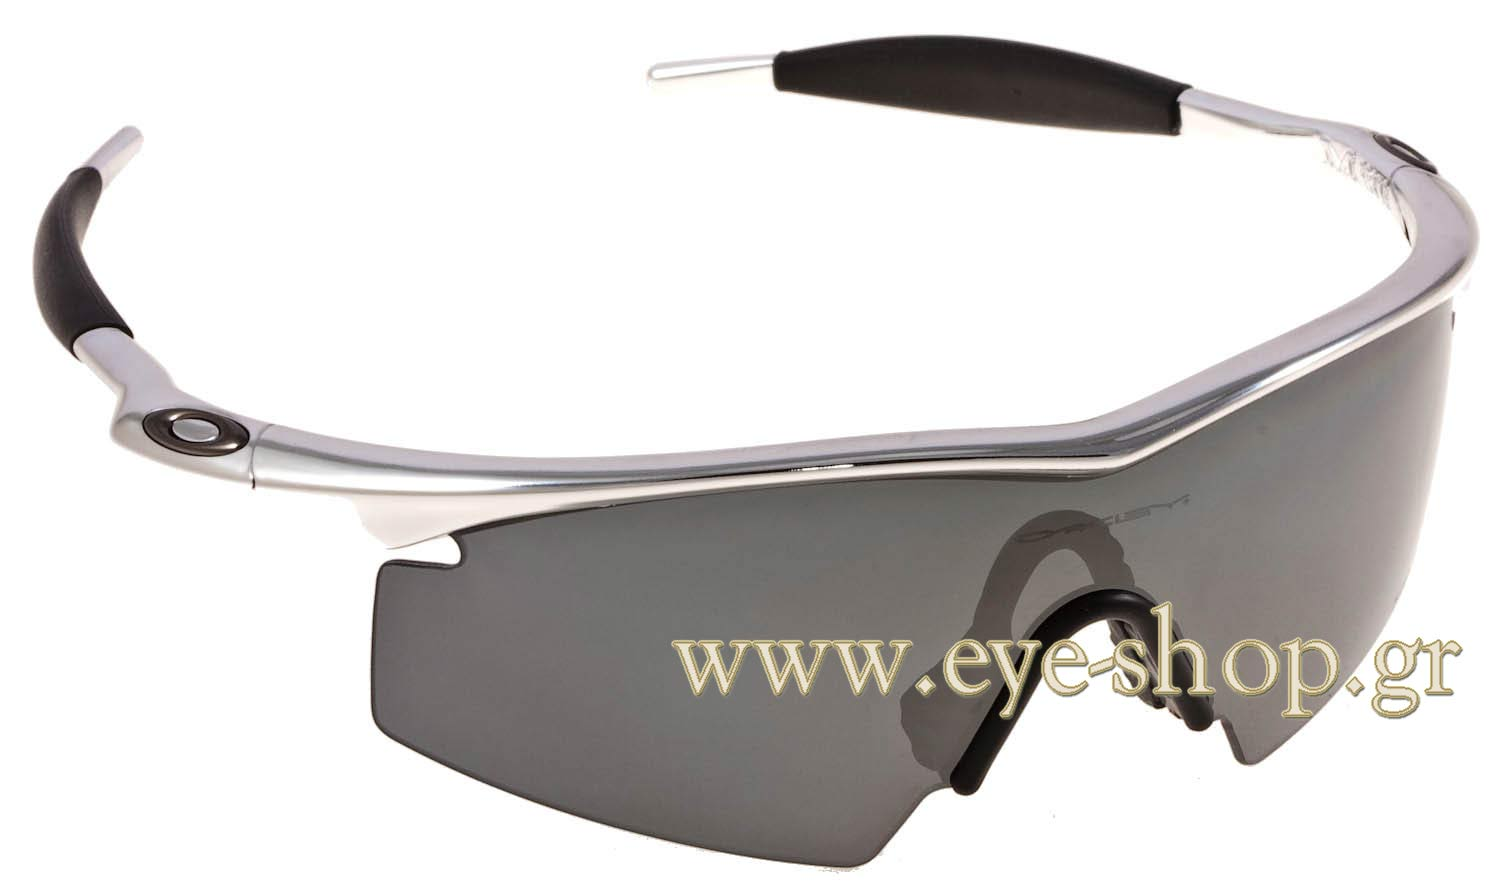 80740803b6d SUNGLASSES Oakley M-FRAME 2 - Custom 75-837 11-308 Bright Chrome Black  Iridium Polarized